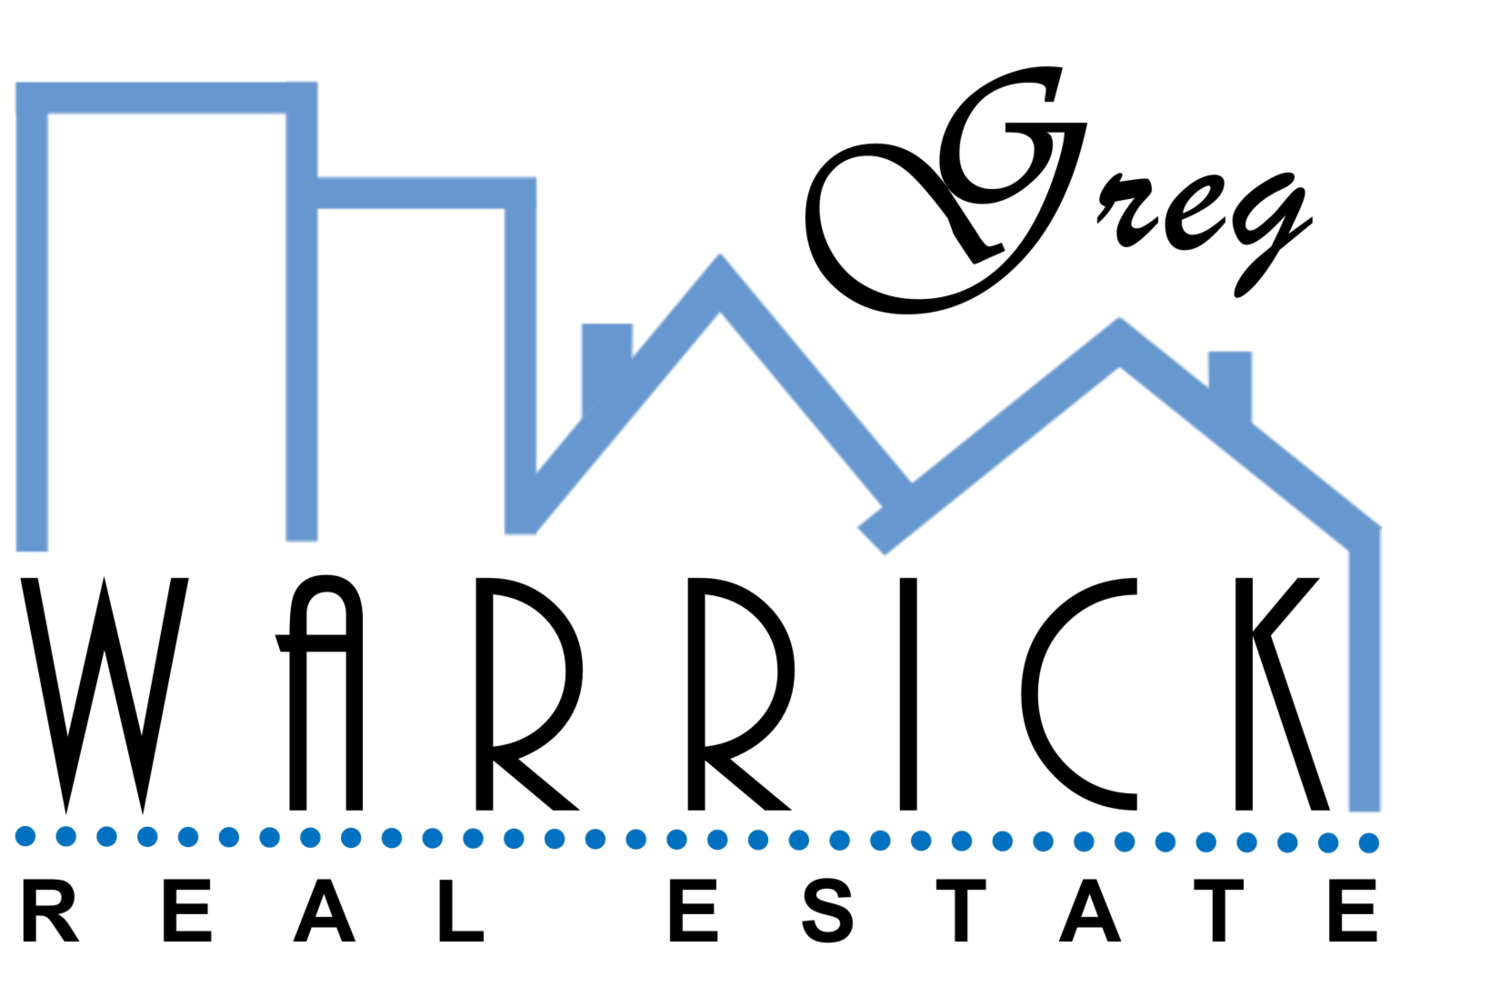 Greg Warrick Real Estate